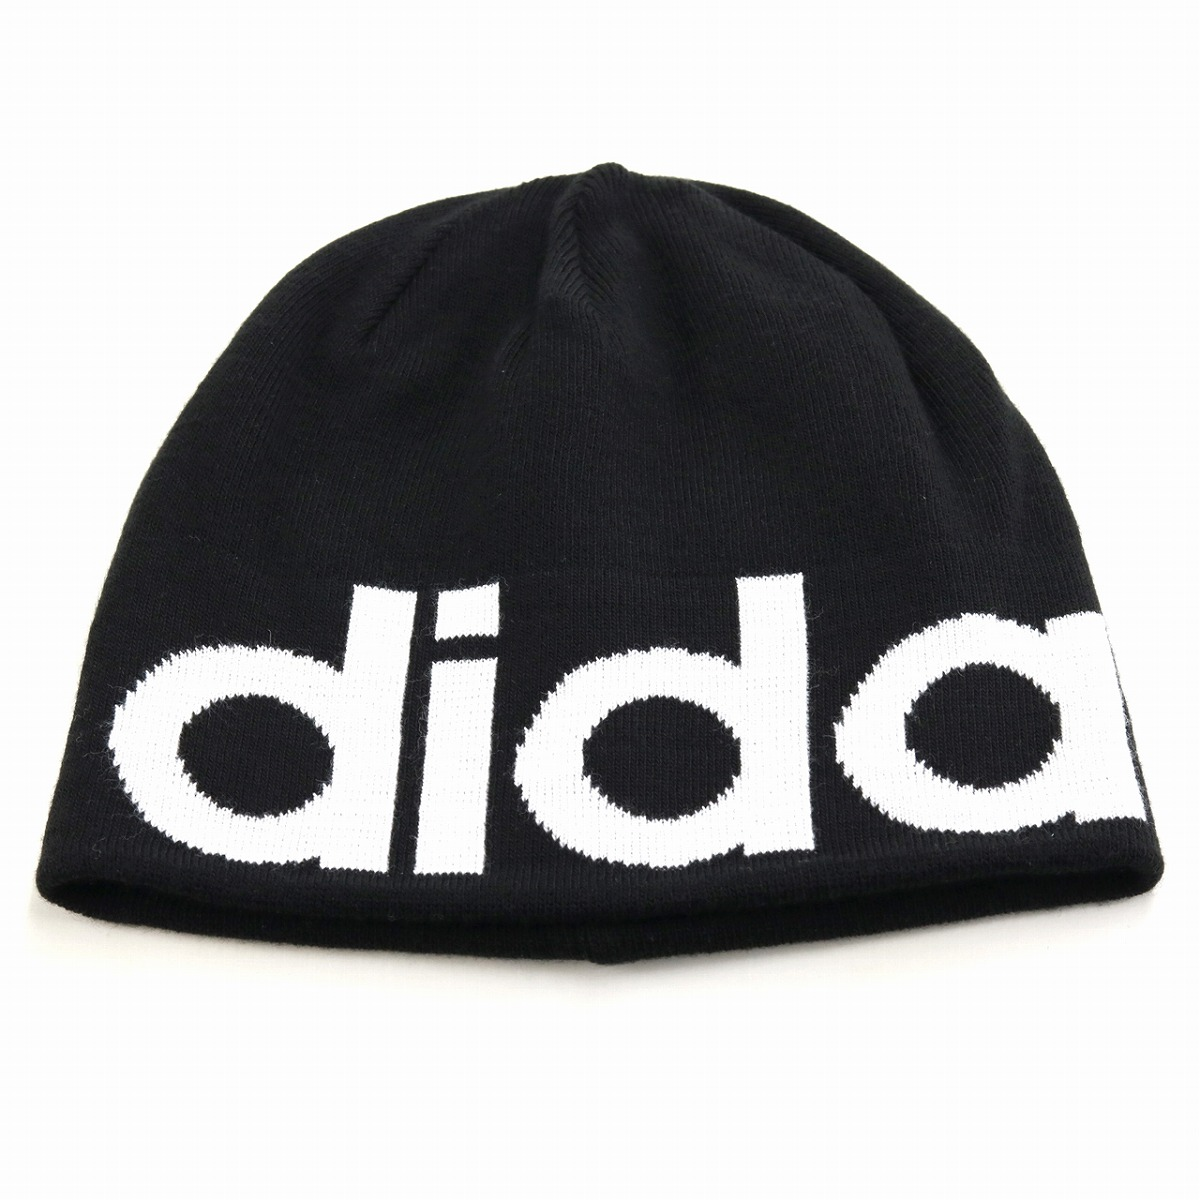 c26fd28e931 Adidas knit hat 2way men adidas hat knit big logo beanie lapel  ニットワッチフリーサイズニット hat Lady s sports MIX coordinates casual stylish trendy ...